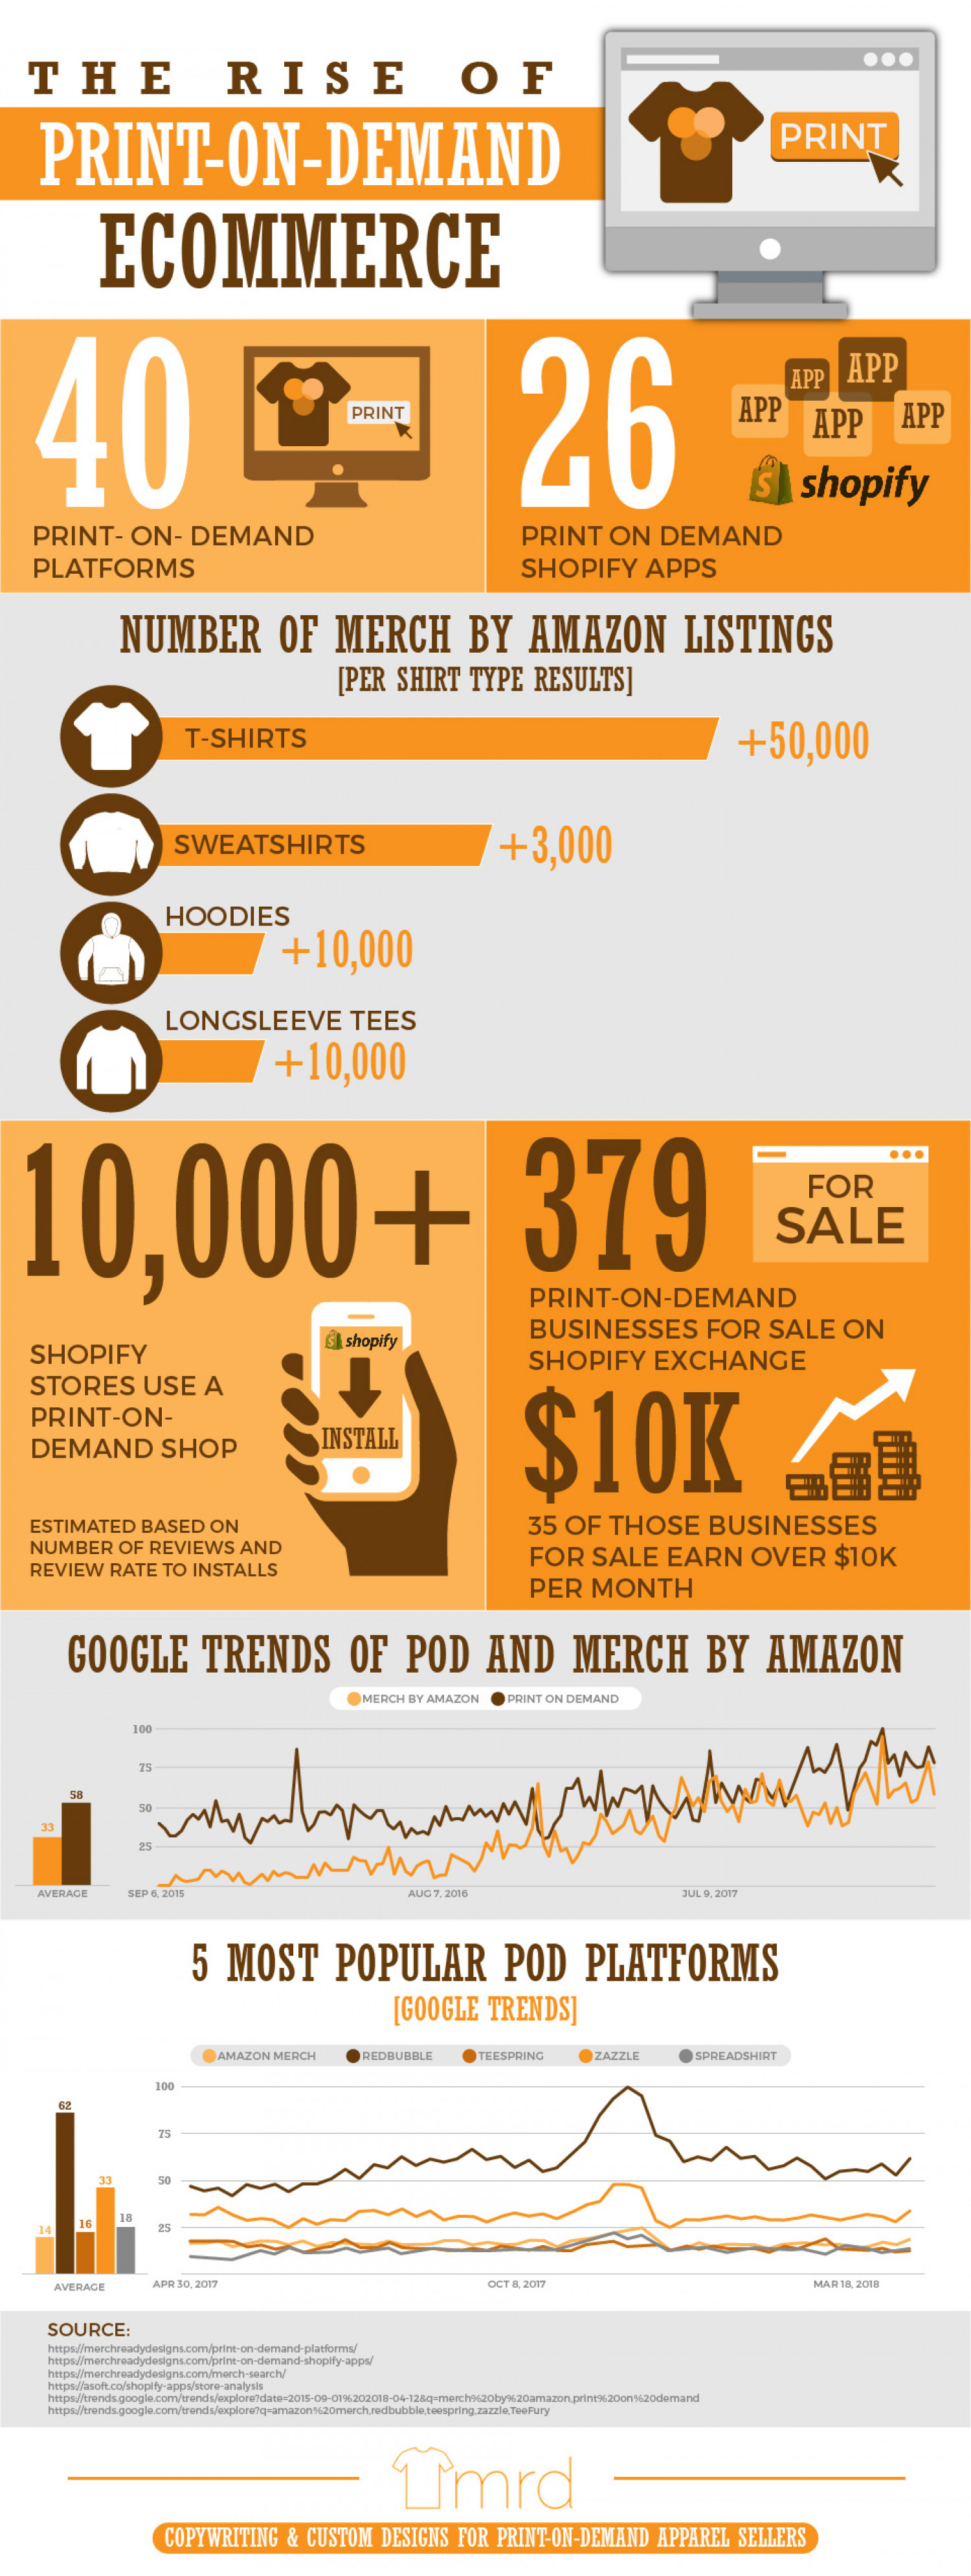 The Rise of Print-on-Demand Ecommerce  Infographic